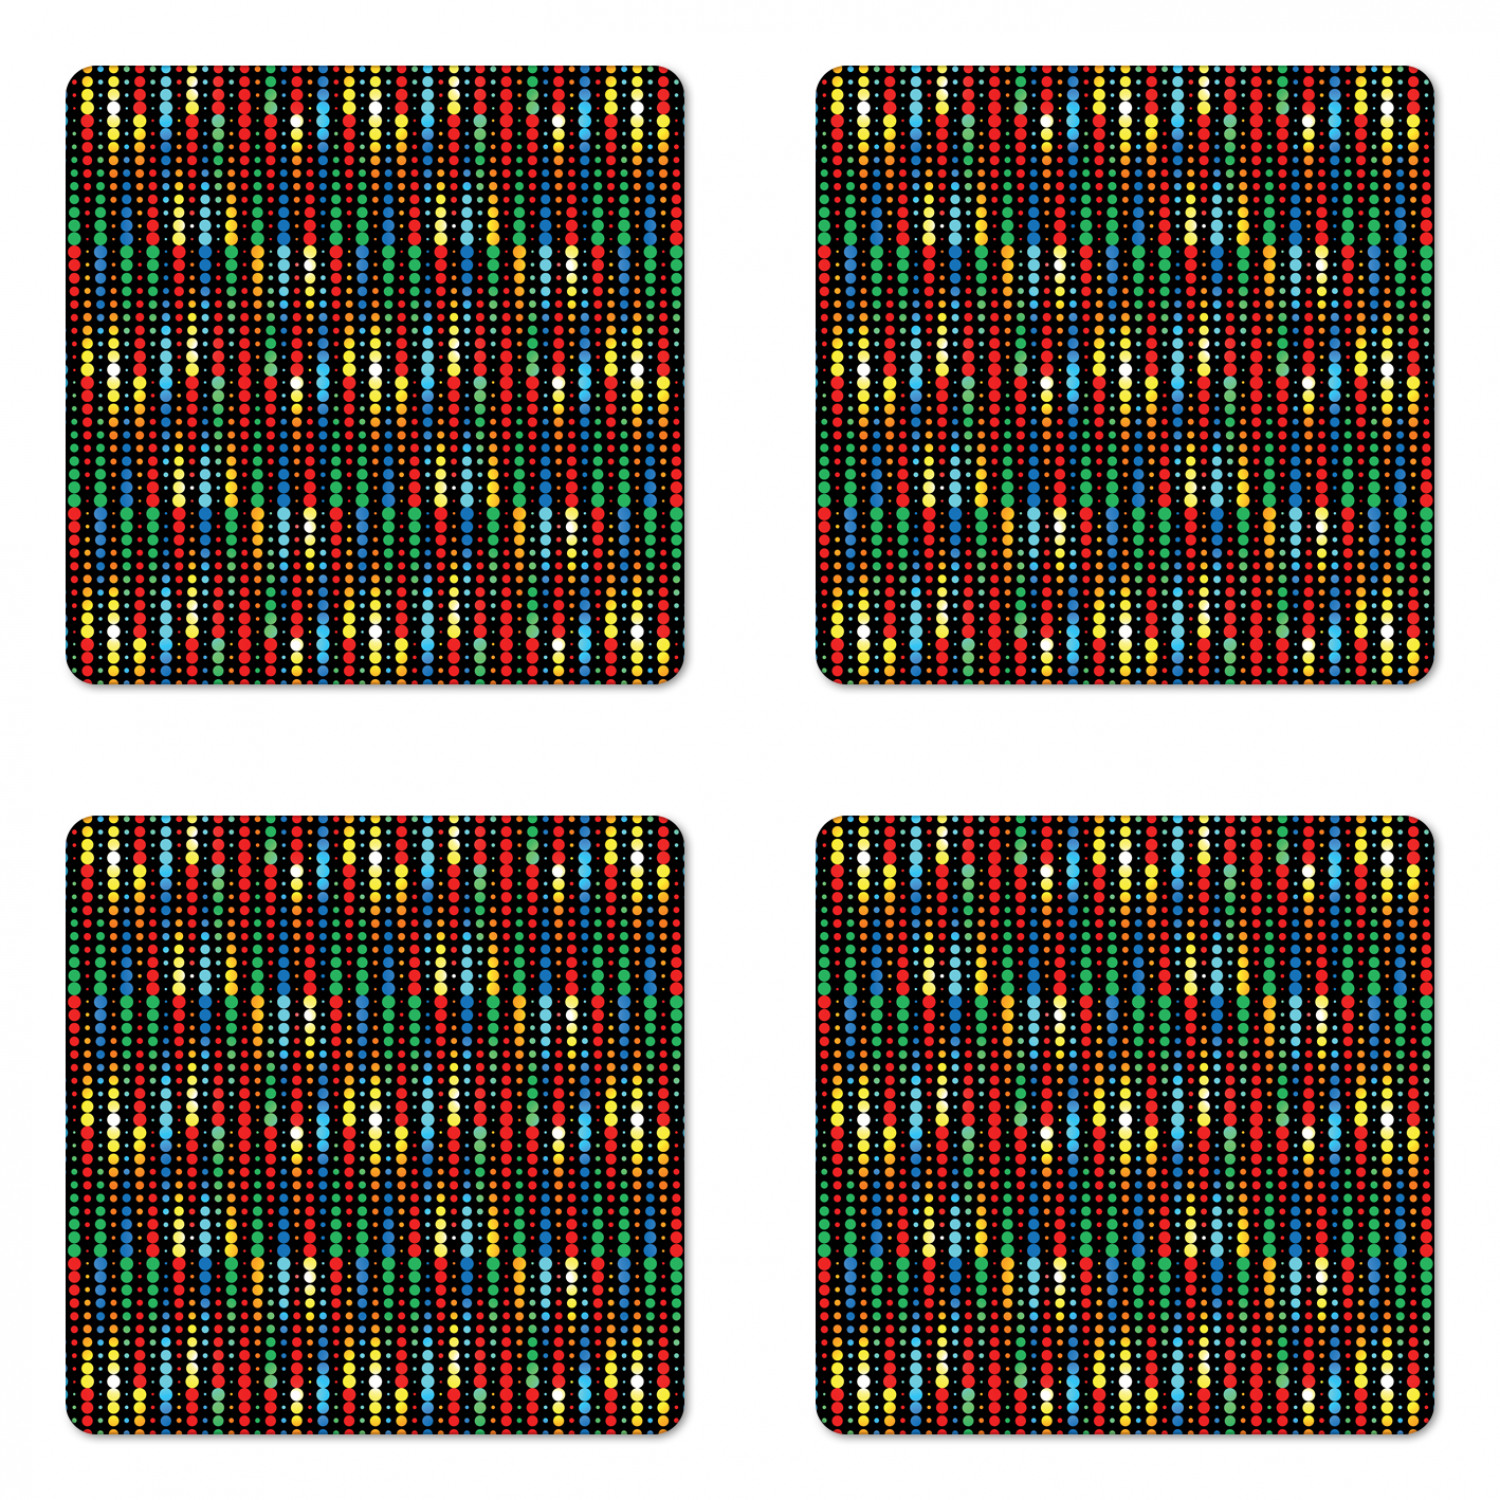 Colorful Coaster Set Of 4 Geometric Polka Dots Composition With Halftone Pattern On Dark Toned Background Square Hardboard Gloss Coasters Standard Size Multicolor By Ambesonne Walmart Com Walmart Com